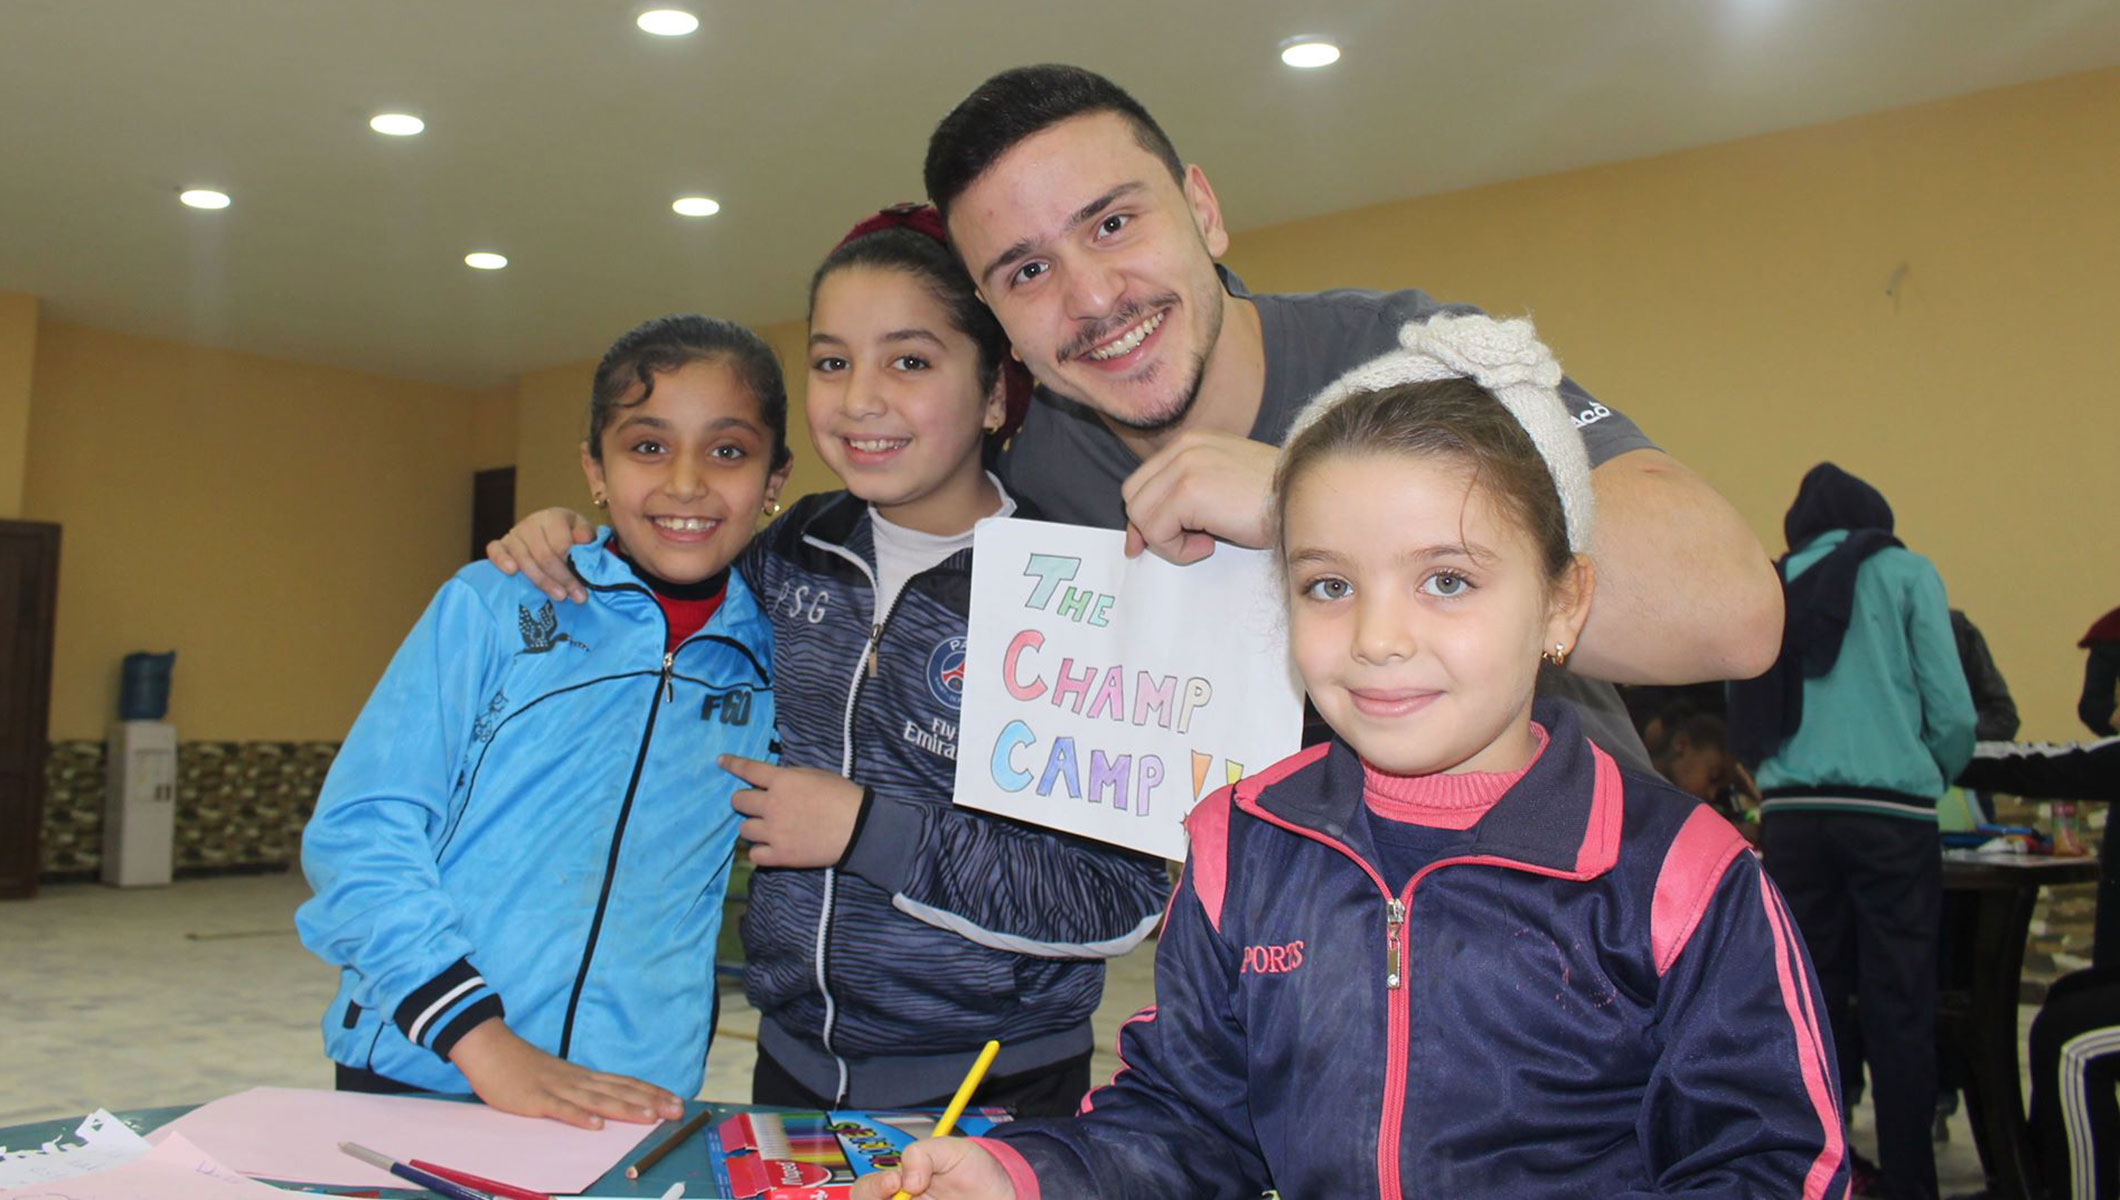 Young Change-Maker's Champ Camp providing opportunities for refugees